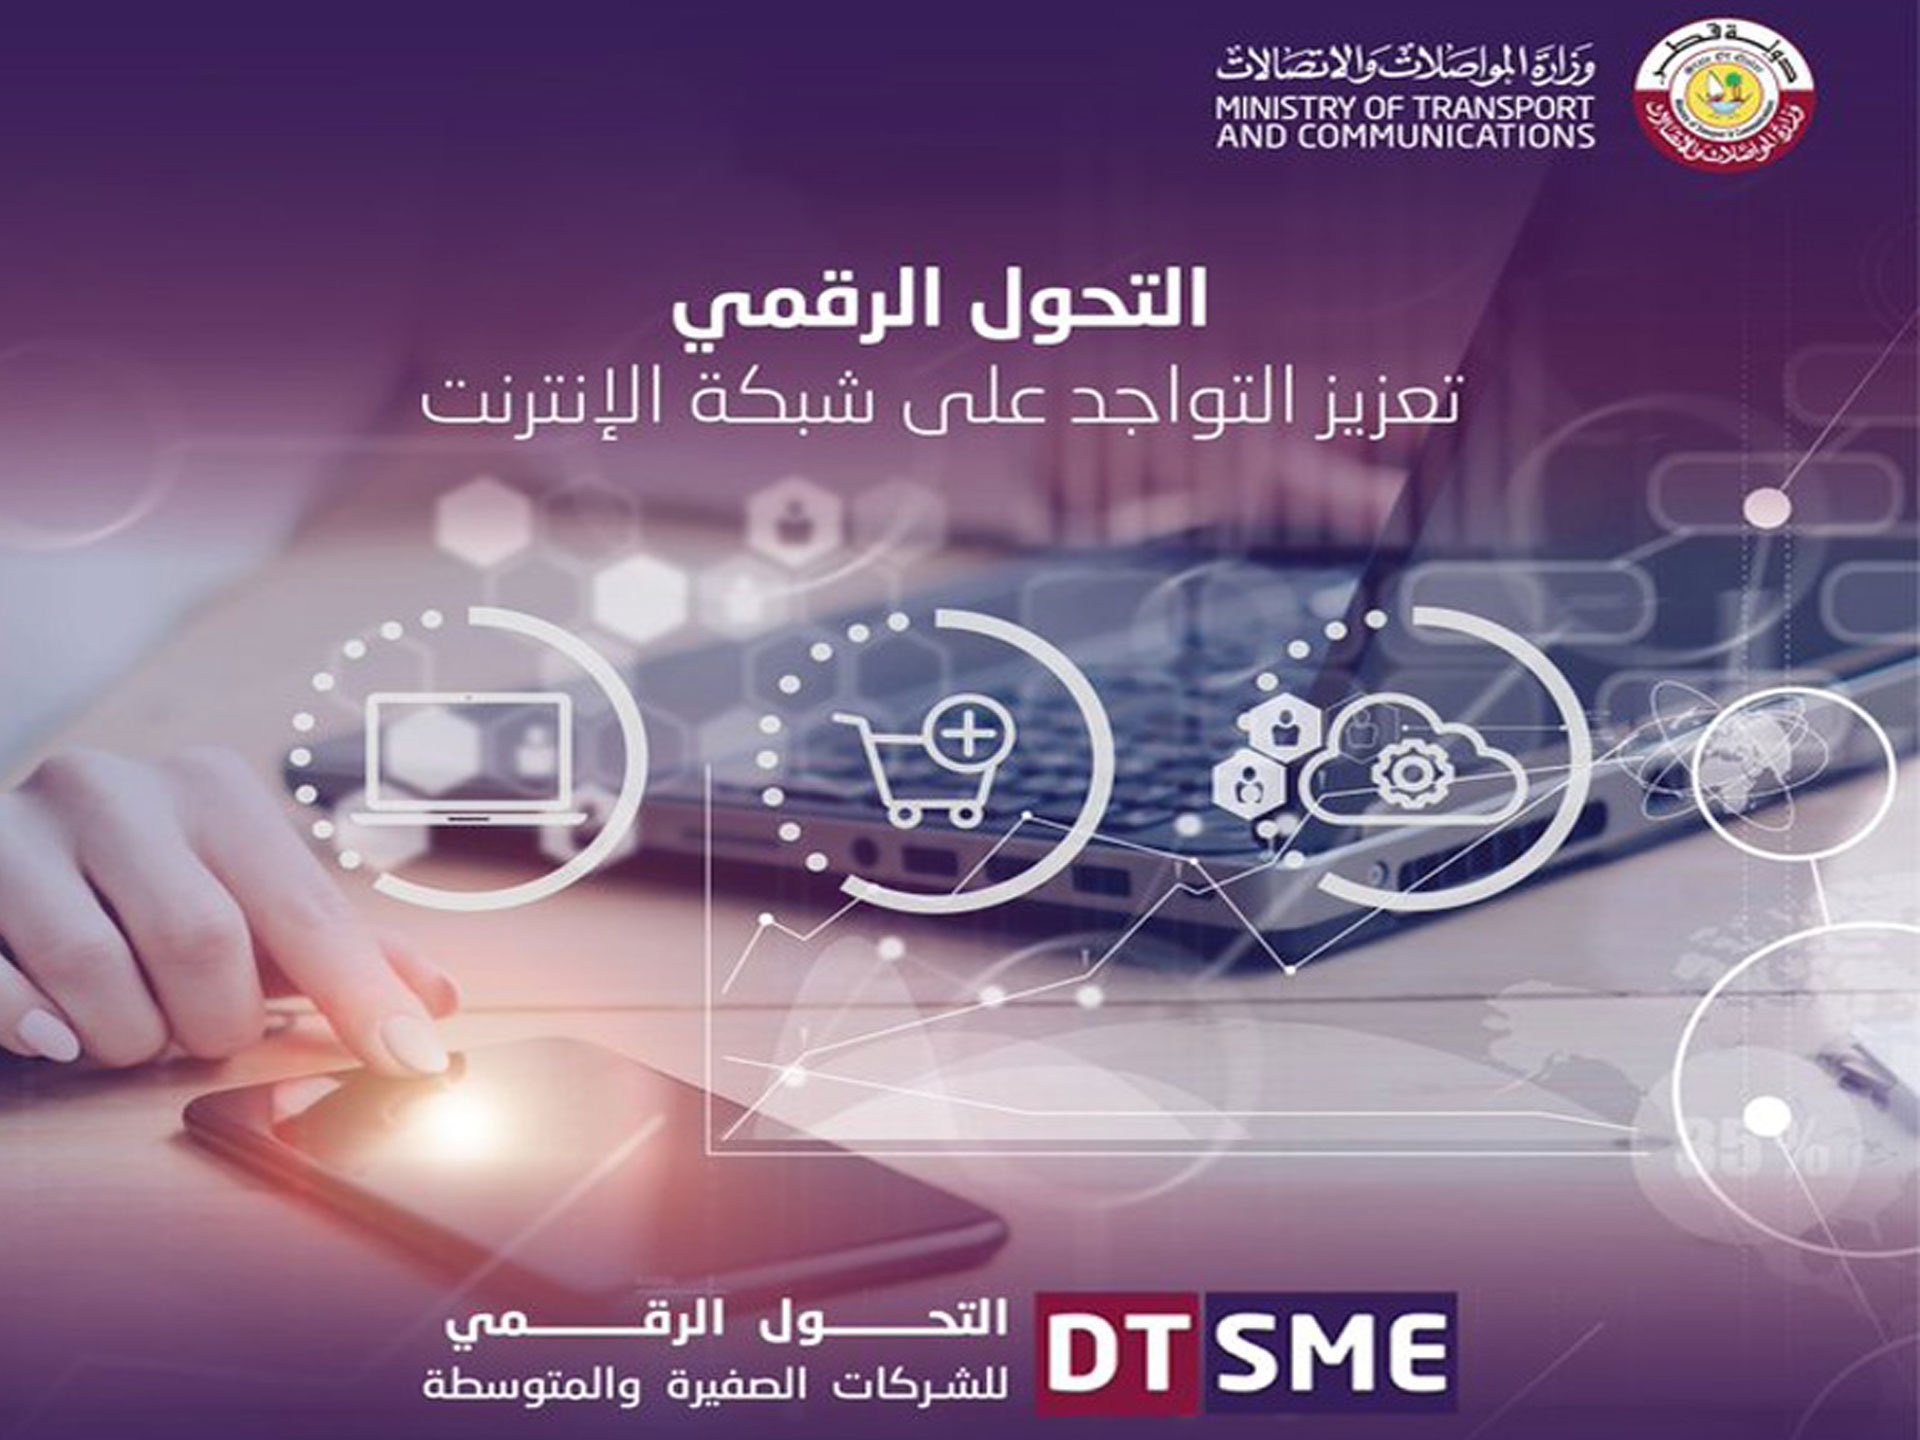 Supporting Digital Transformation in SMEs